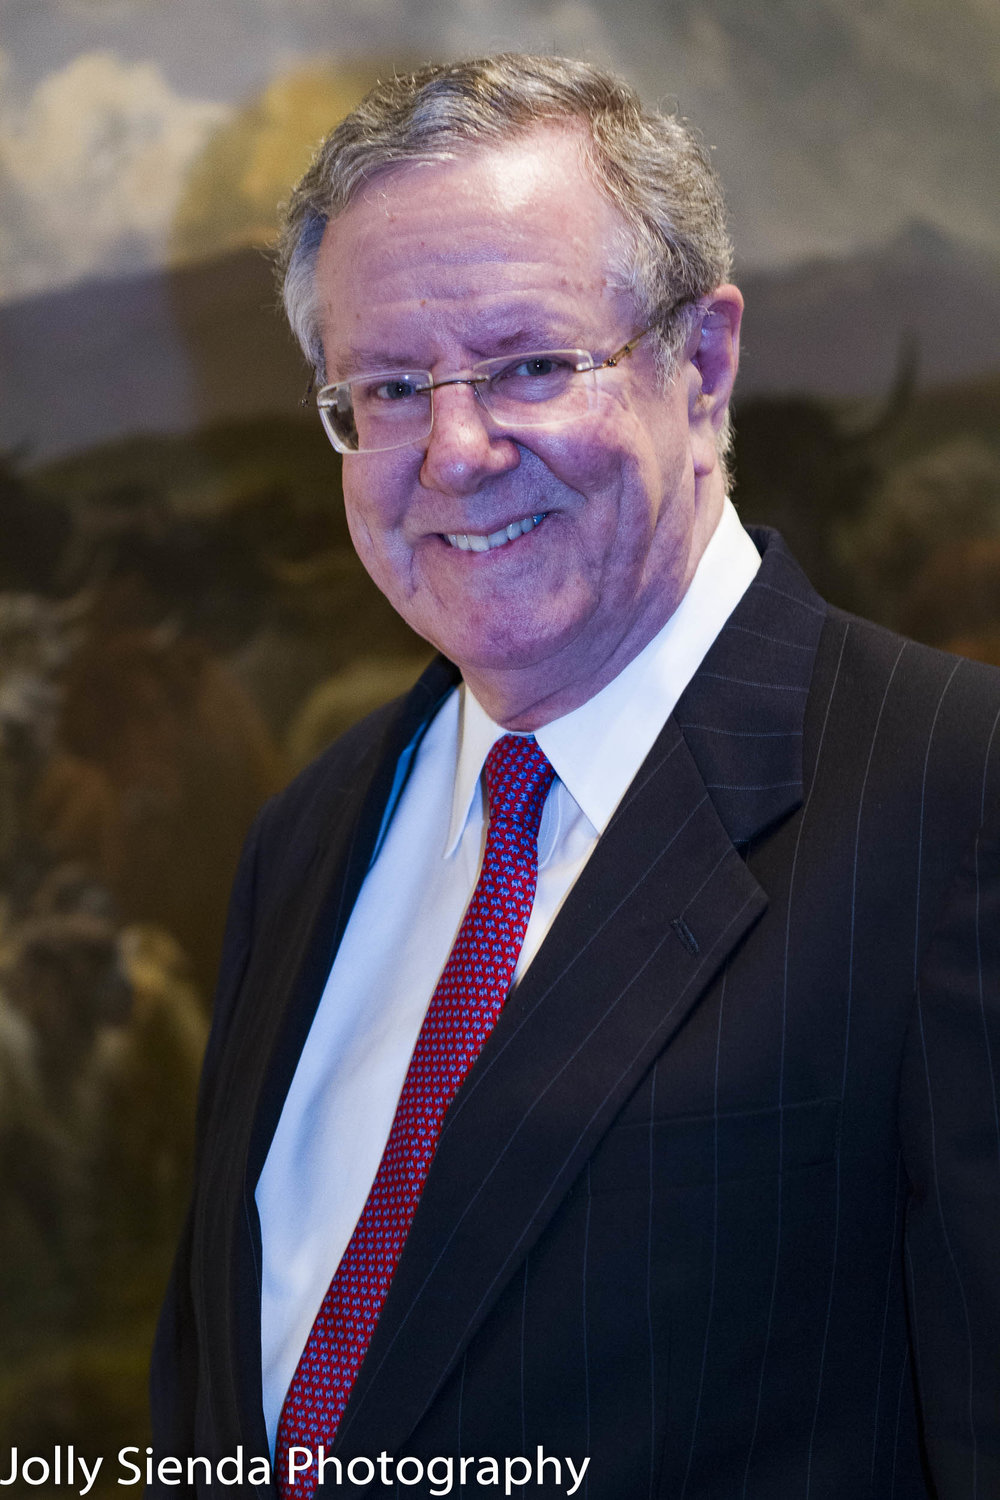 Steve Forbes, American Publishing Executive, and former Republic